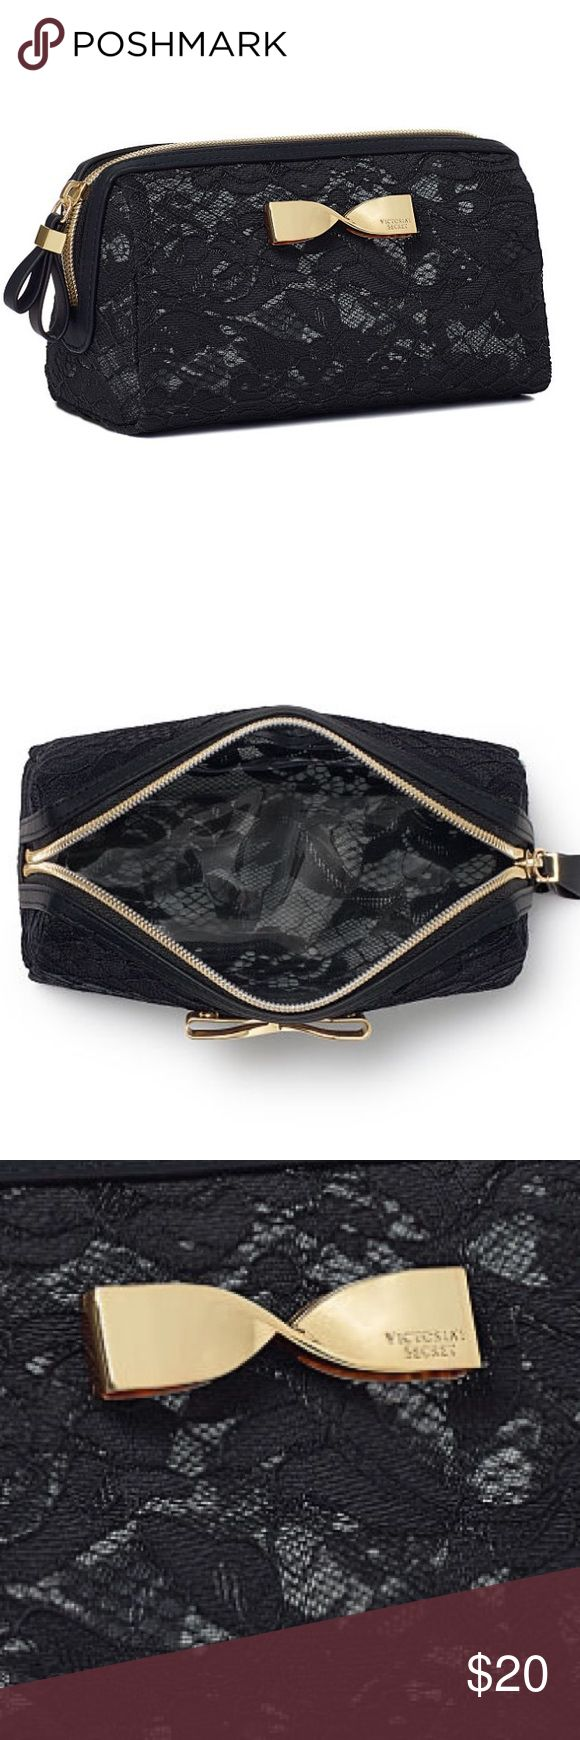 "❤️Black Lace VS Makeup Bag❤️ Brand new! Small enough to tuck inside another bag! Easy to clean, perfect for makeup, brushes and small beauty essentials! Measures 7""L X 2 1/4""W X 2 3/4""H Victoria's Secret Bags Cosmetic Bags & Cases"